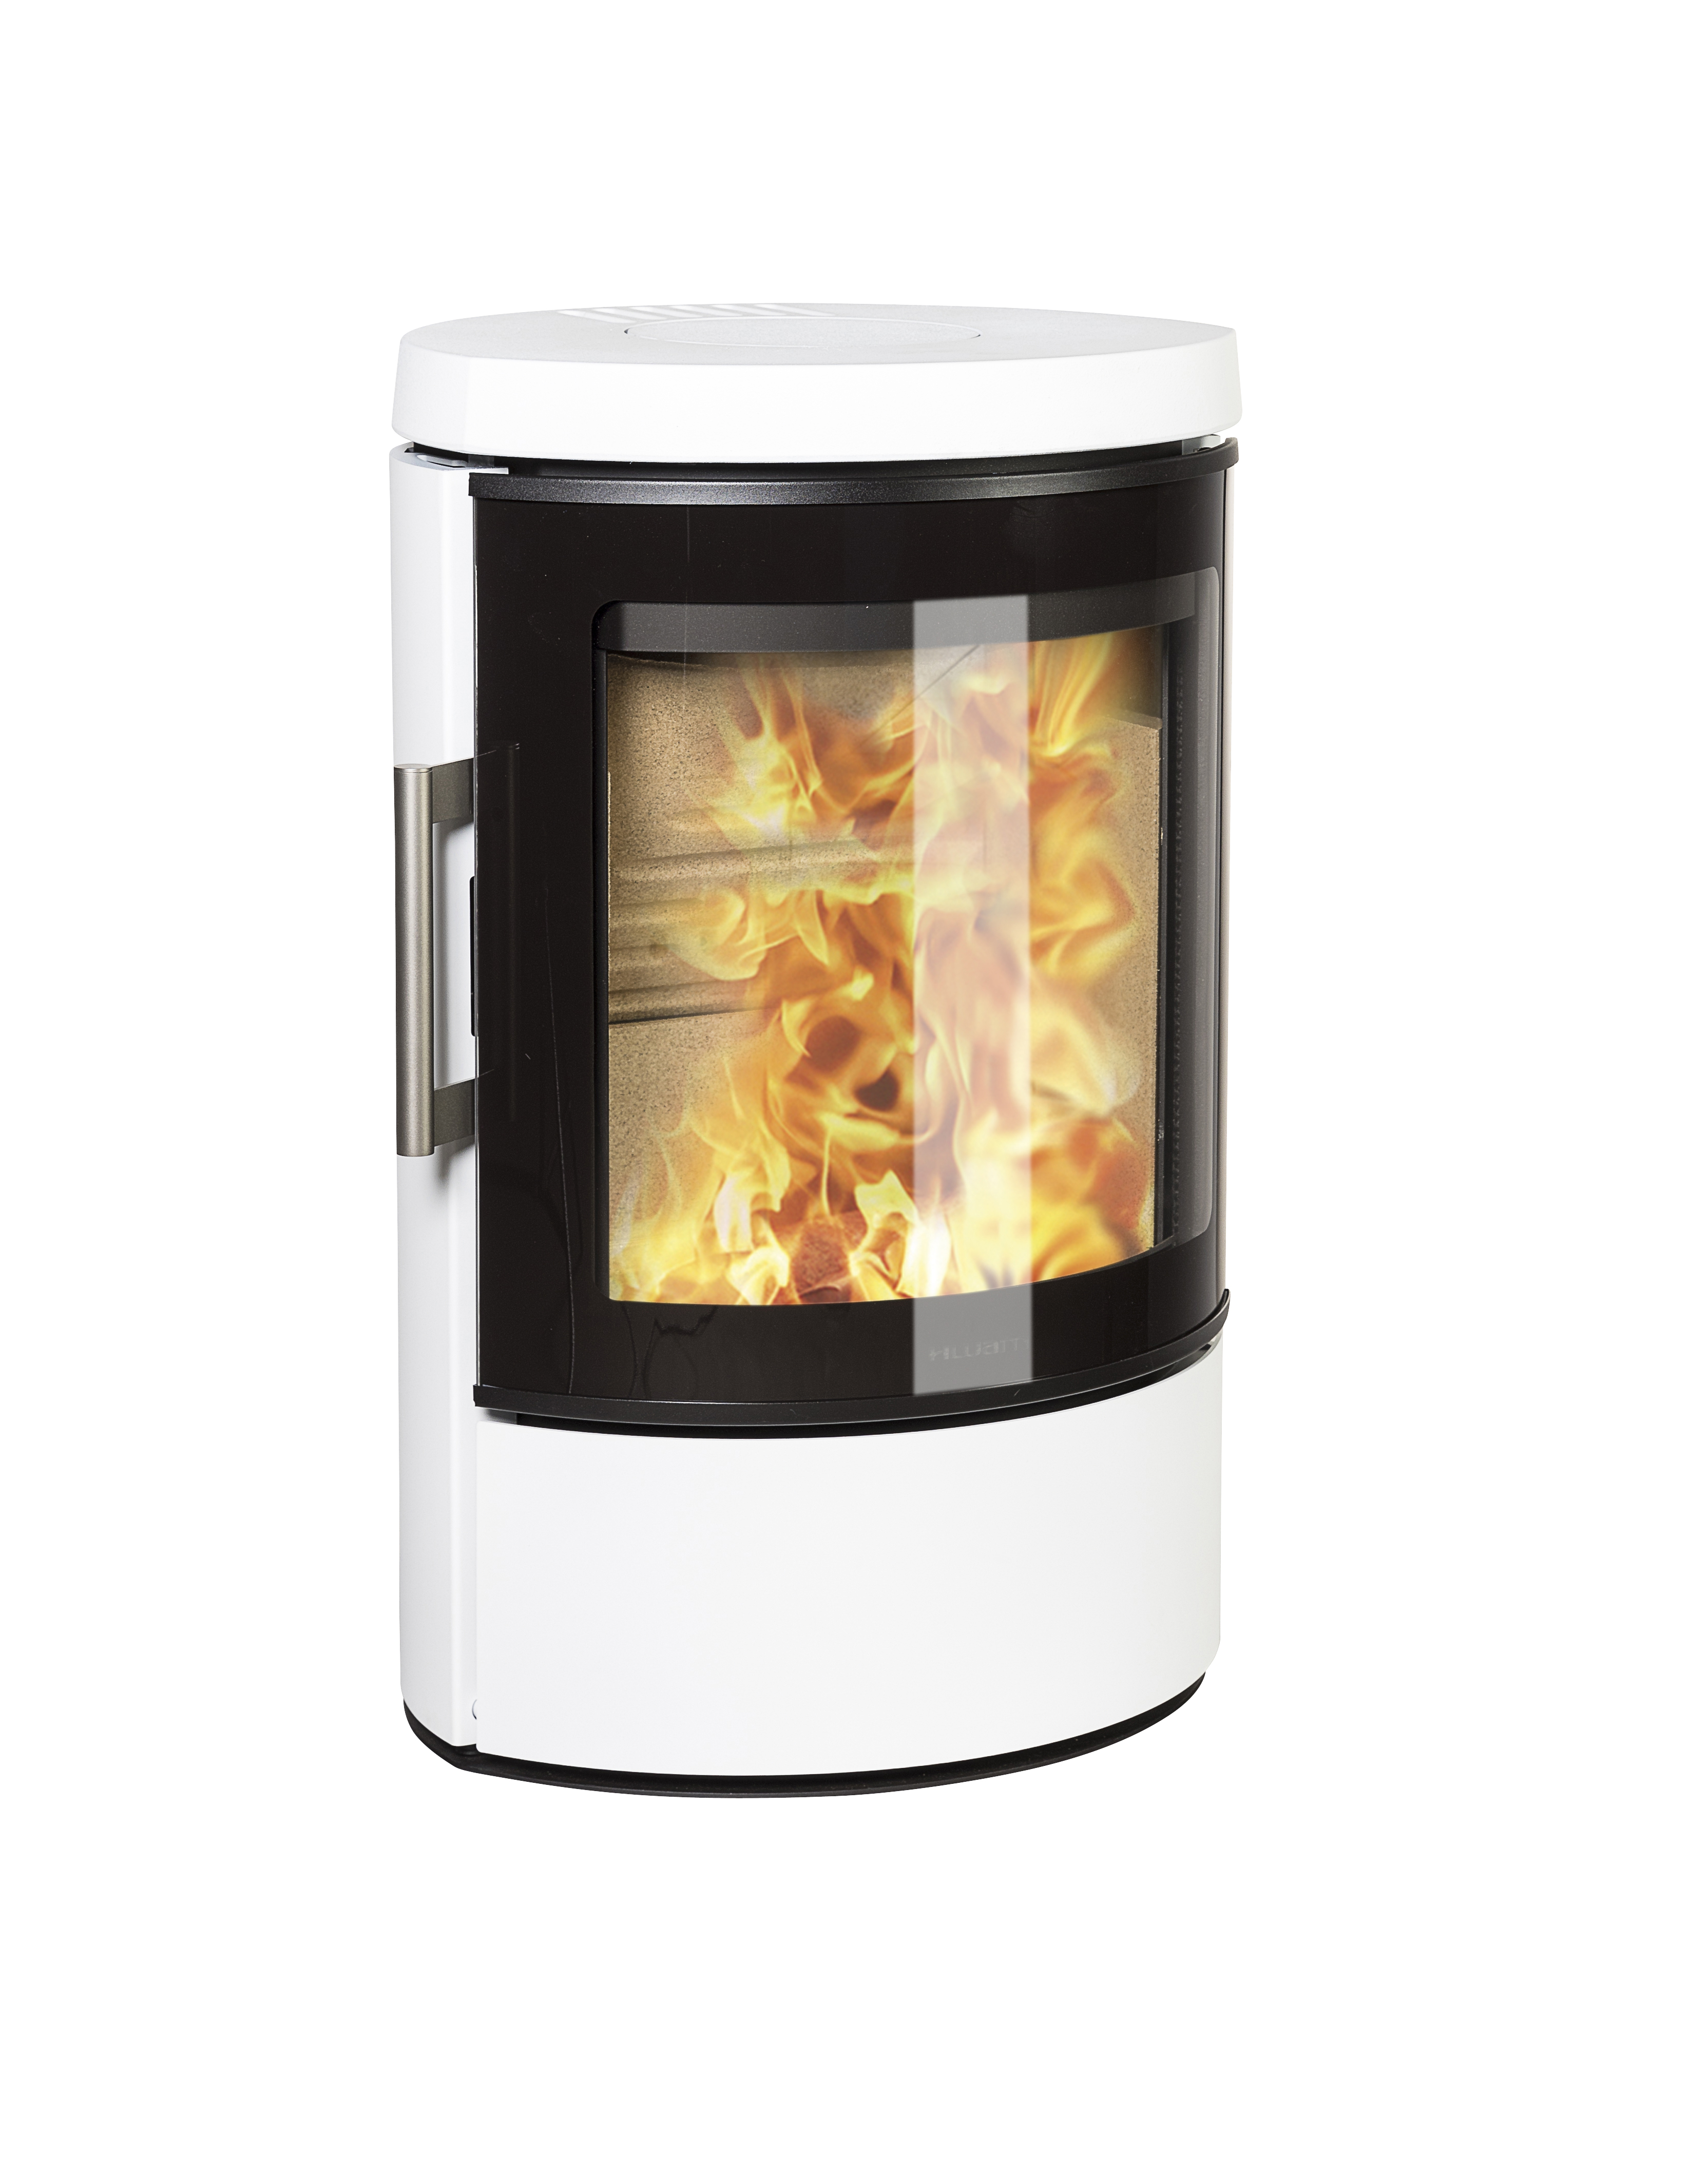 Hwam 3110 Wood Stove In White With A Energy Rating Stoves More